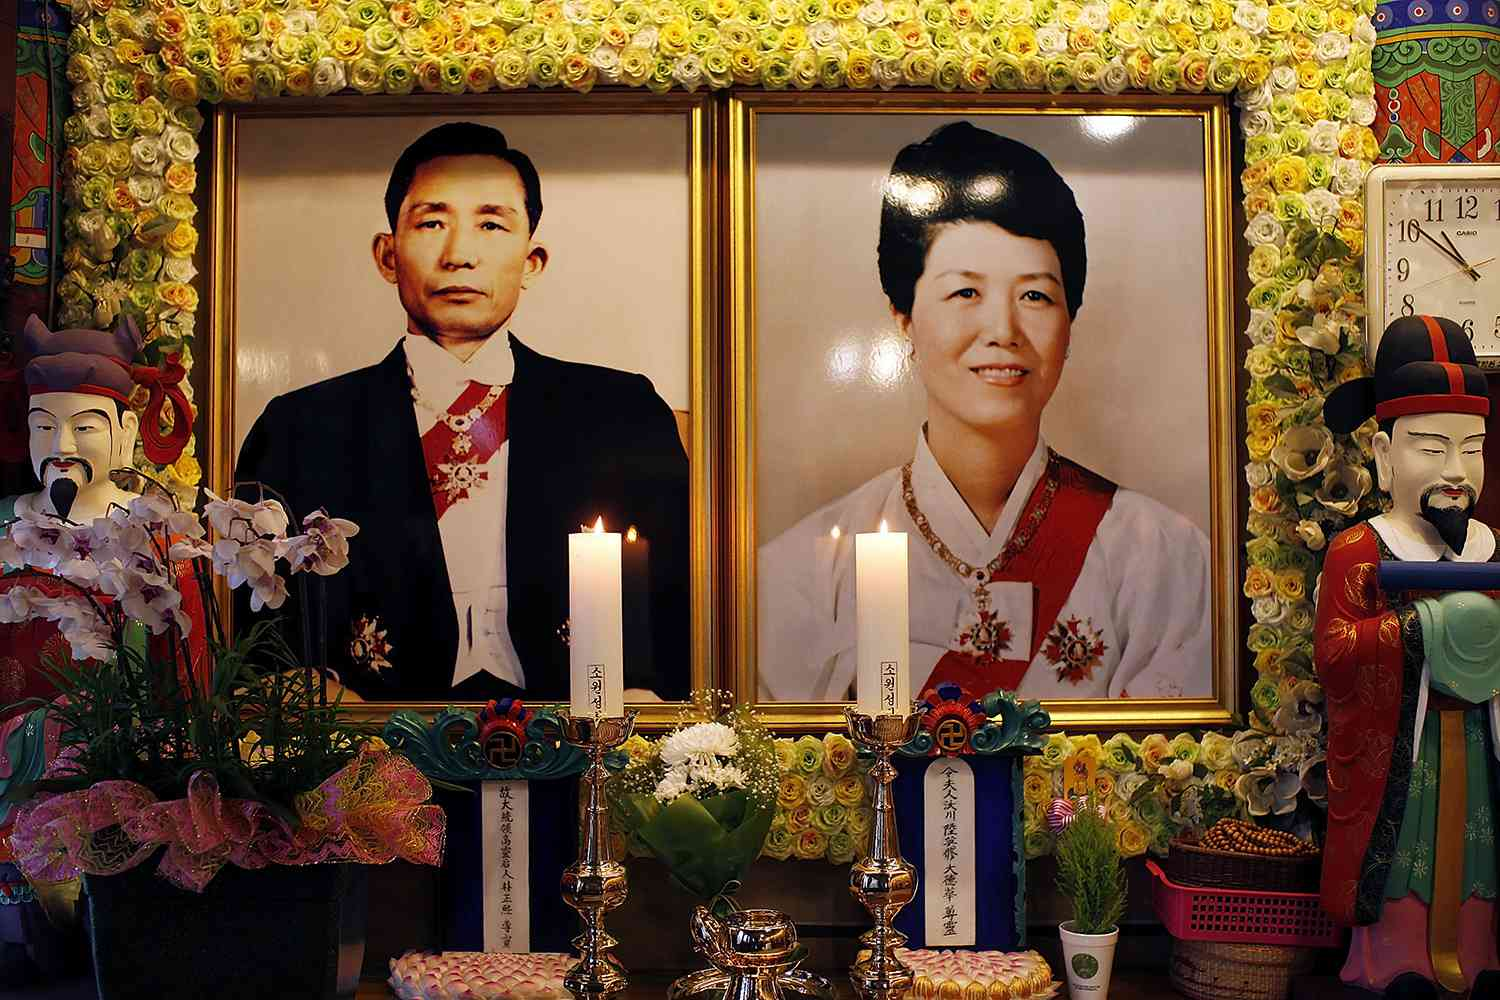 President Park Chung-Hee and His Wife Yuk Young-Soo